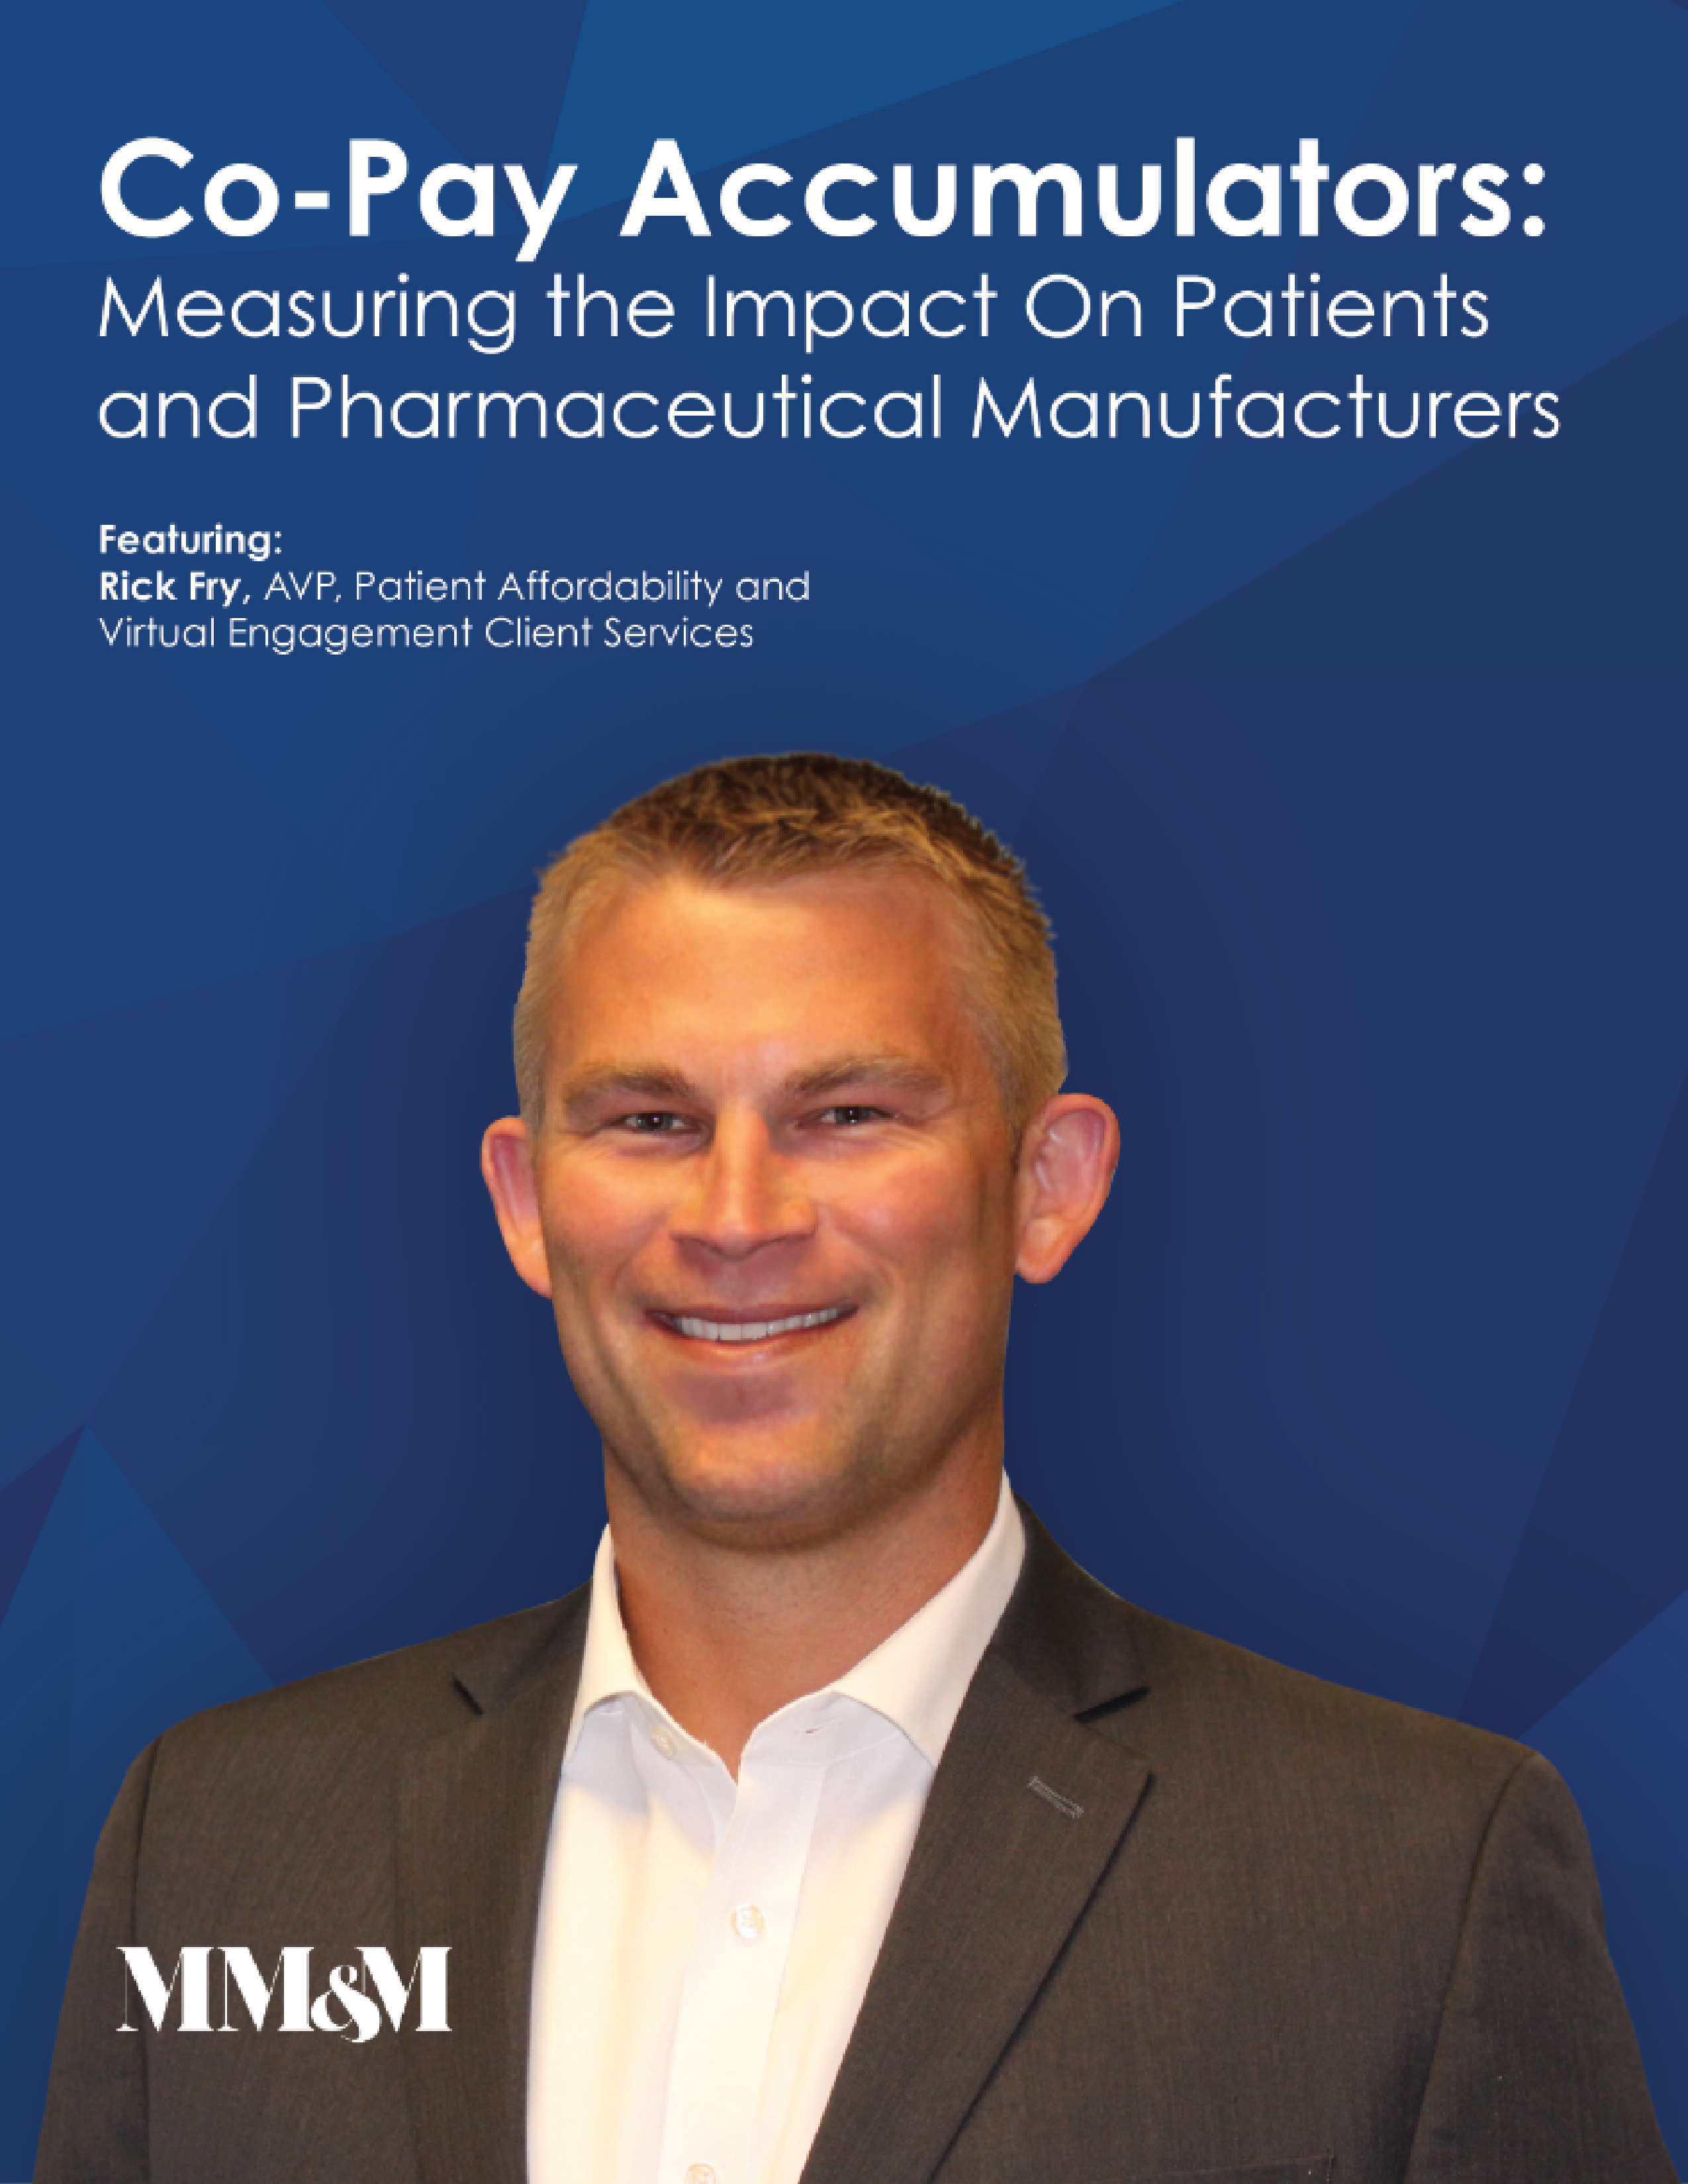 Webcast - Co-Pay Accumulators: Measuring the Impact on Patients and Pharmaceutical Manufacturers